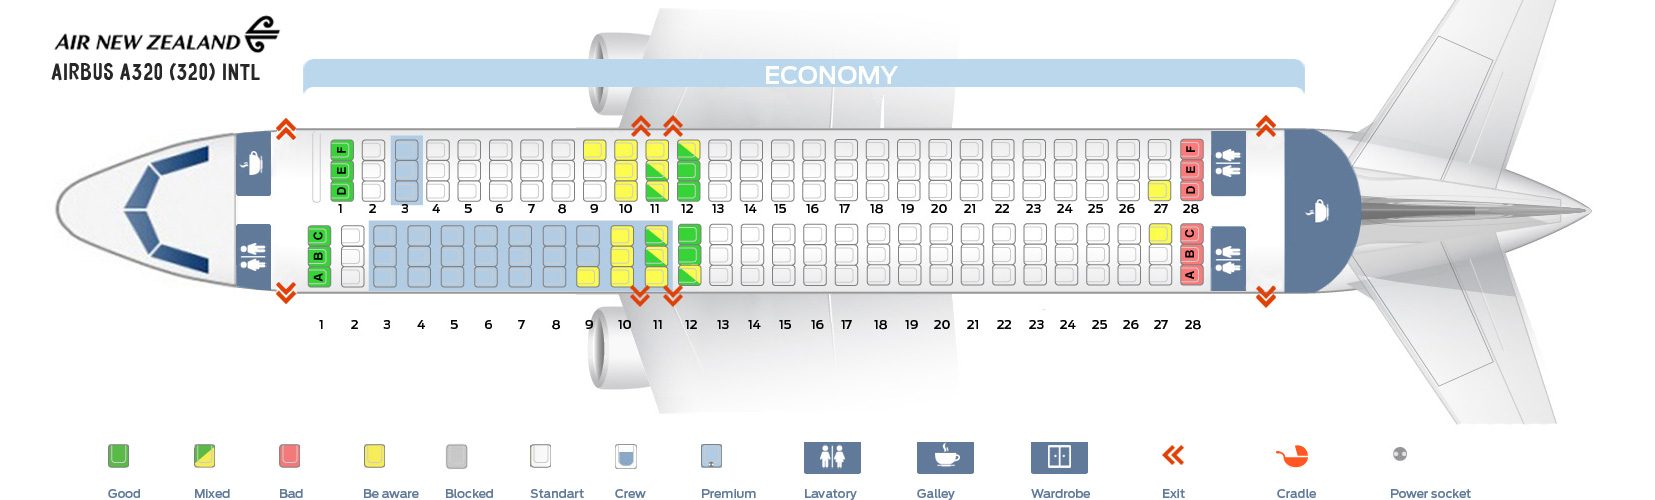 Seat Map Airbus A320 Intl Air New Zealand